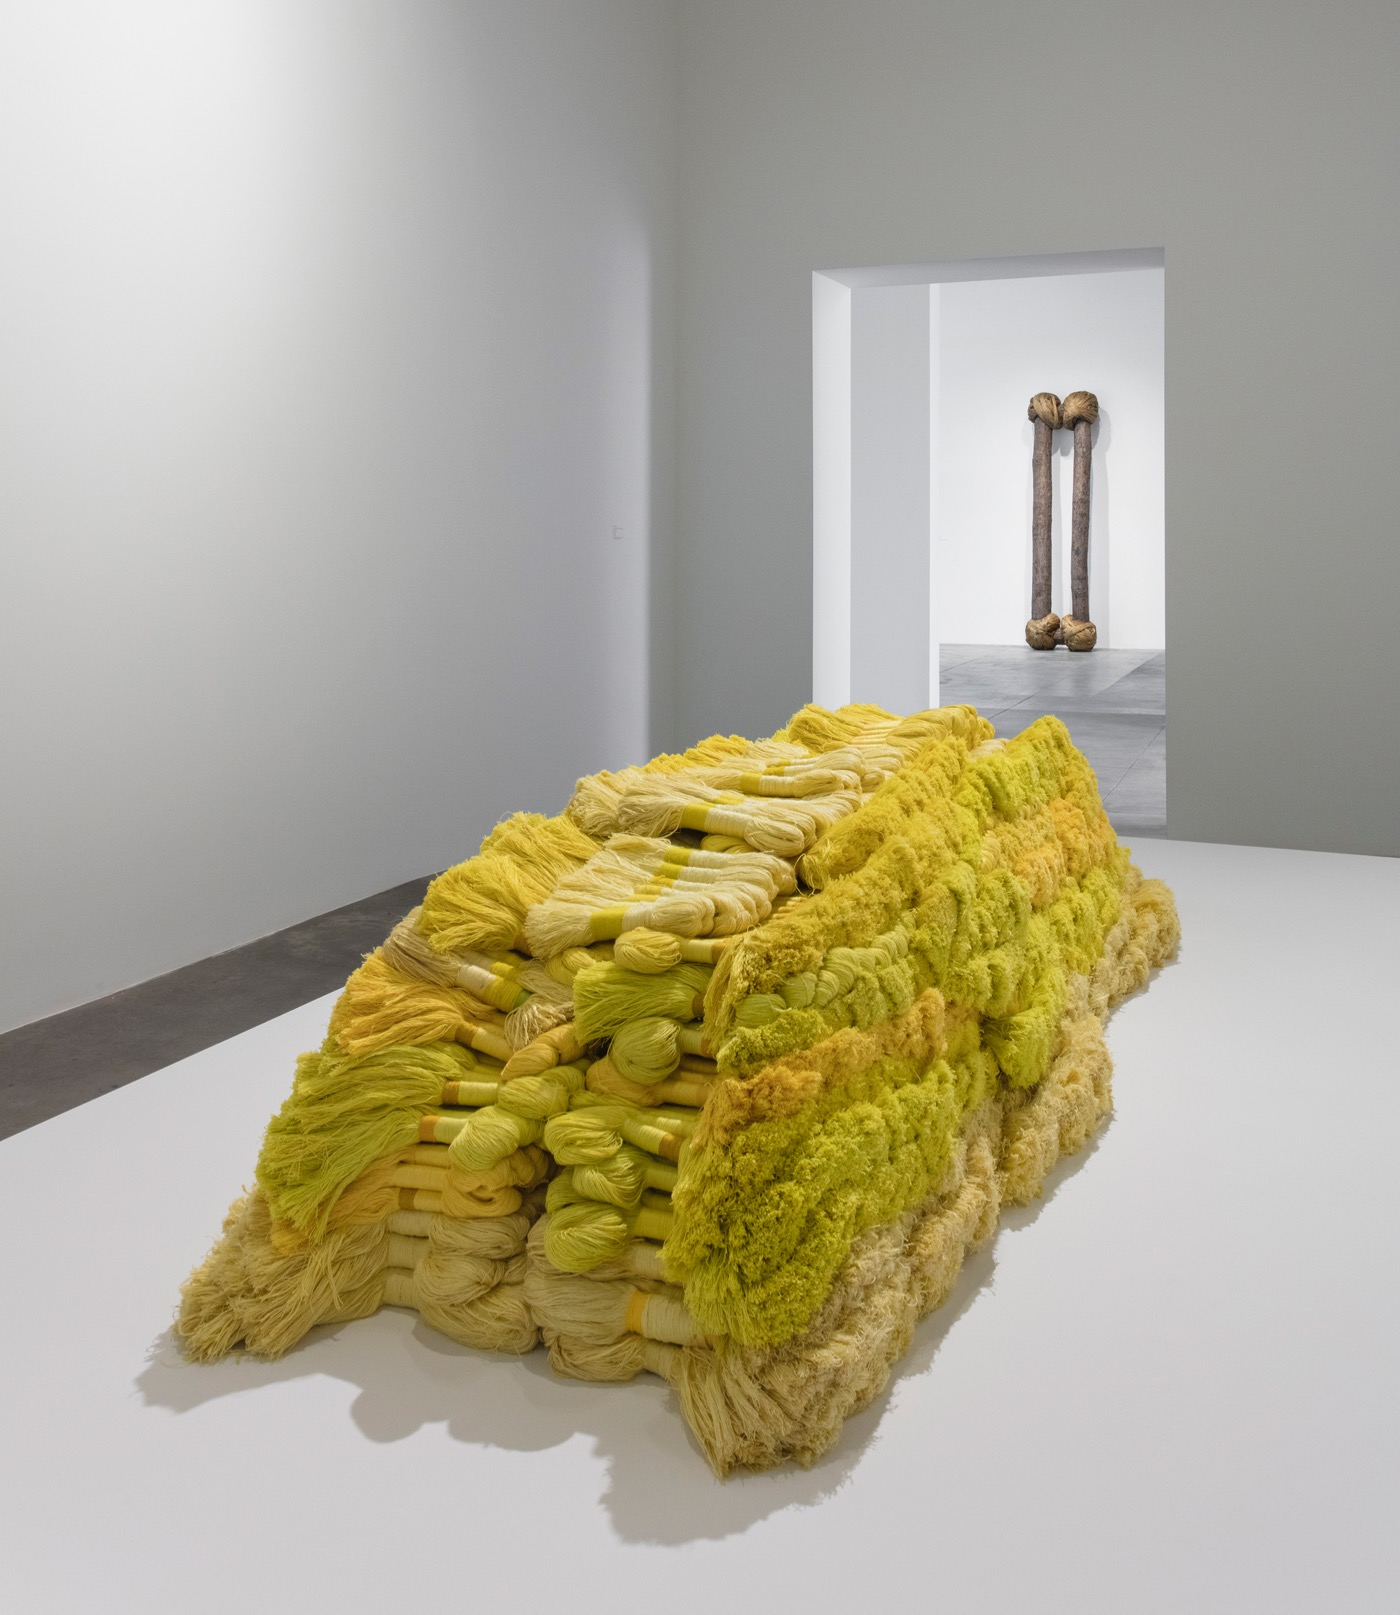 Sheila Hicks, Banisteriopsis, 1965 – 1966 and Banisteriopsis II, 1965 – 1966 / 2010 (Banisteriopsis) The Montreal Museum of Fine Arts, Liliane and David M. Stewart Collection (Banisteriopsis II) The Institute of Contemporary Art, Boston; Gift of the artist in honour of Jenelle Porter, 2012.26 Installation view, 'Revolution in the Making: Abstract Sculpture by Women, 1947 – 2016', Hauser Wirth & Schimmel, 2016 Courtesy the artists and Hauser & Wirth Photo: Brian Forrest